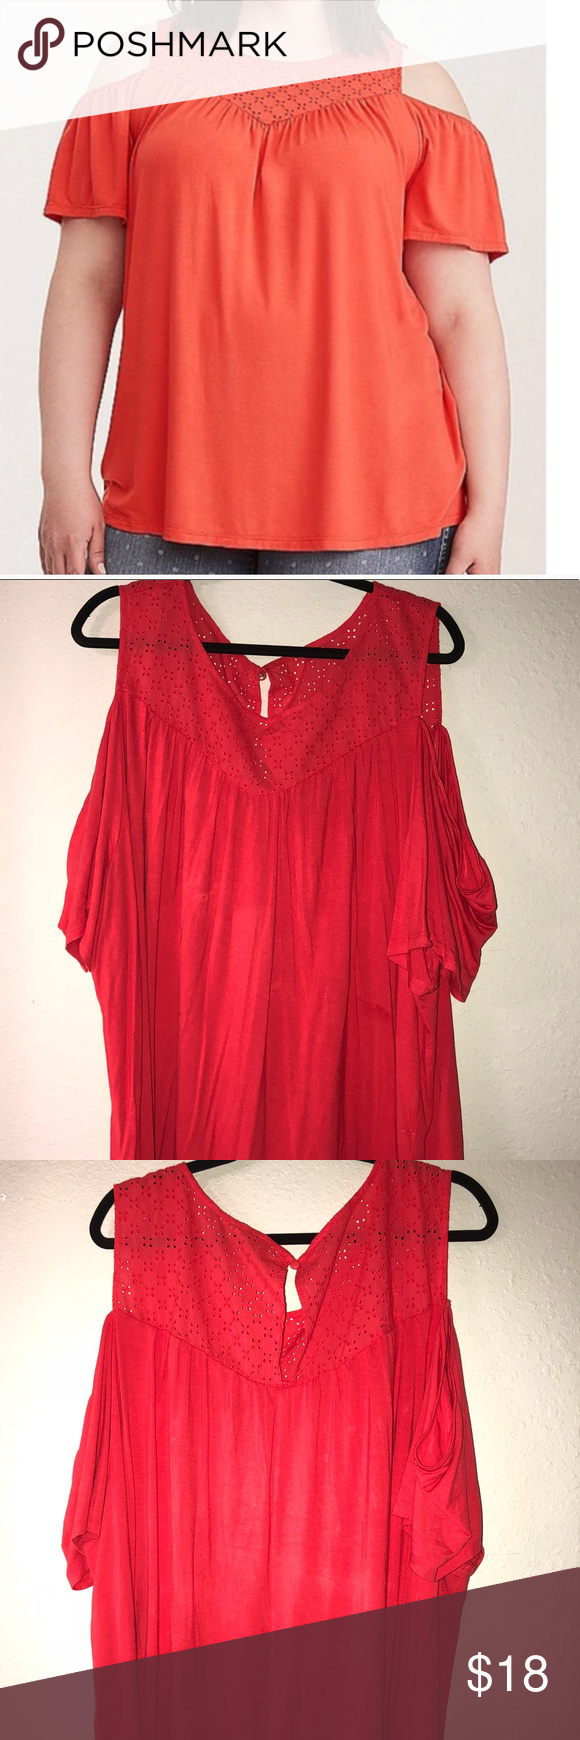 540e9761fc73c Torrid Orange Eyelet Cold Shoulder Top Torrid Orange Eyelet Cold Shoulder  Top in size 5. Worn once. In perfect condition. torrid Tops Tees - Short  Sleeve